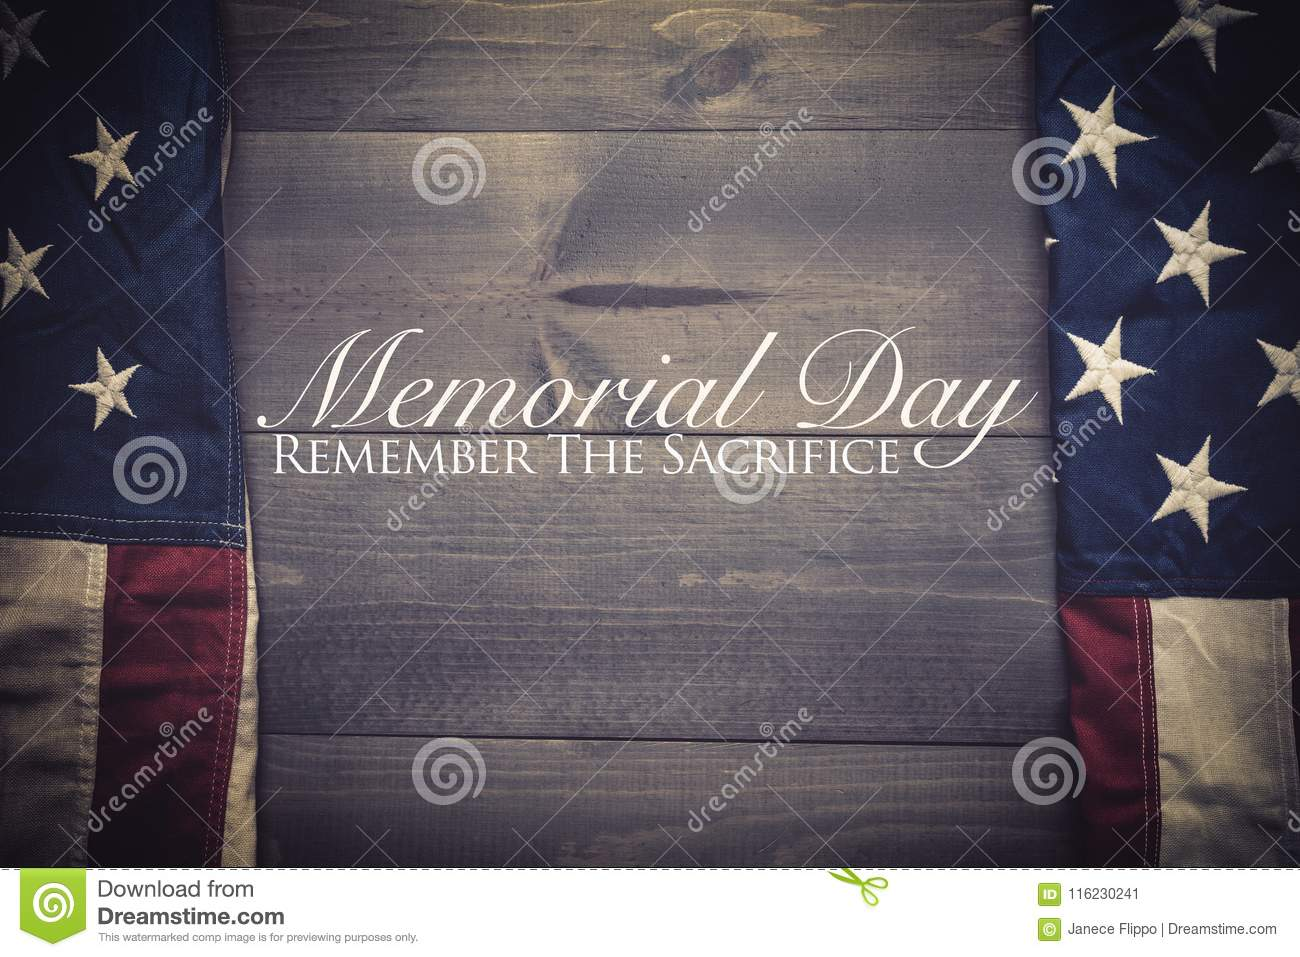 The flag of the United Sates on a grey plank background with memorial day